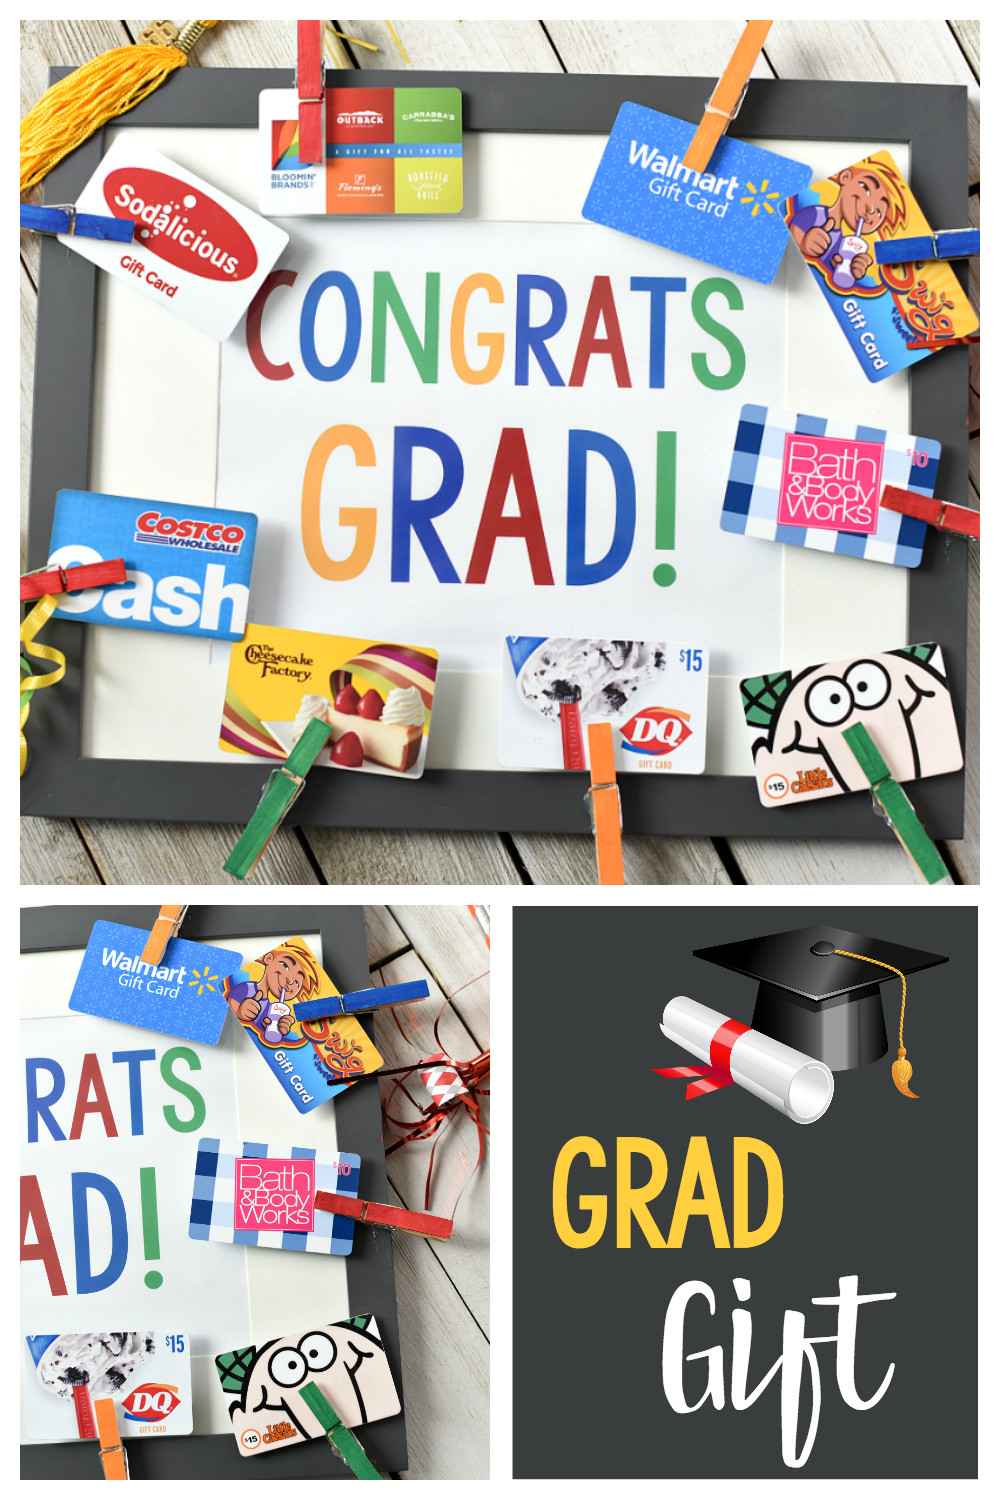 Phd Graduation Gift Ideas For Him  Cute Graduation Gifts Congrats Grad Gift Card Frame – Fun